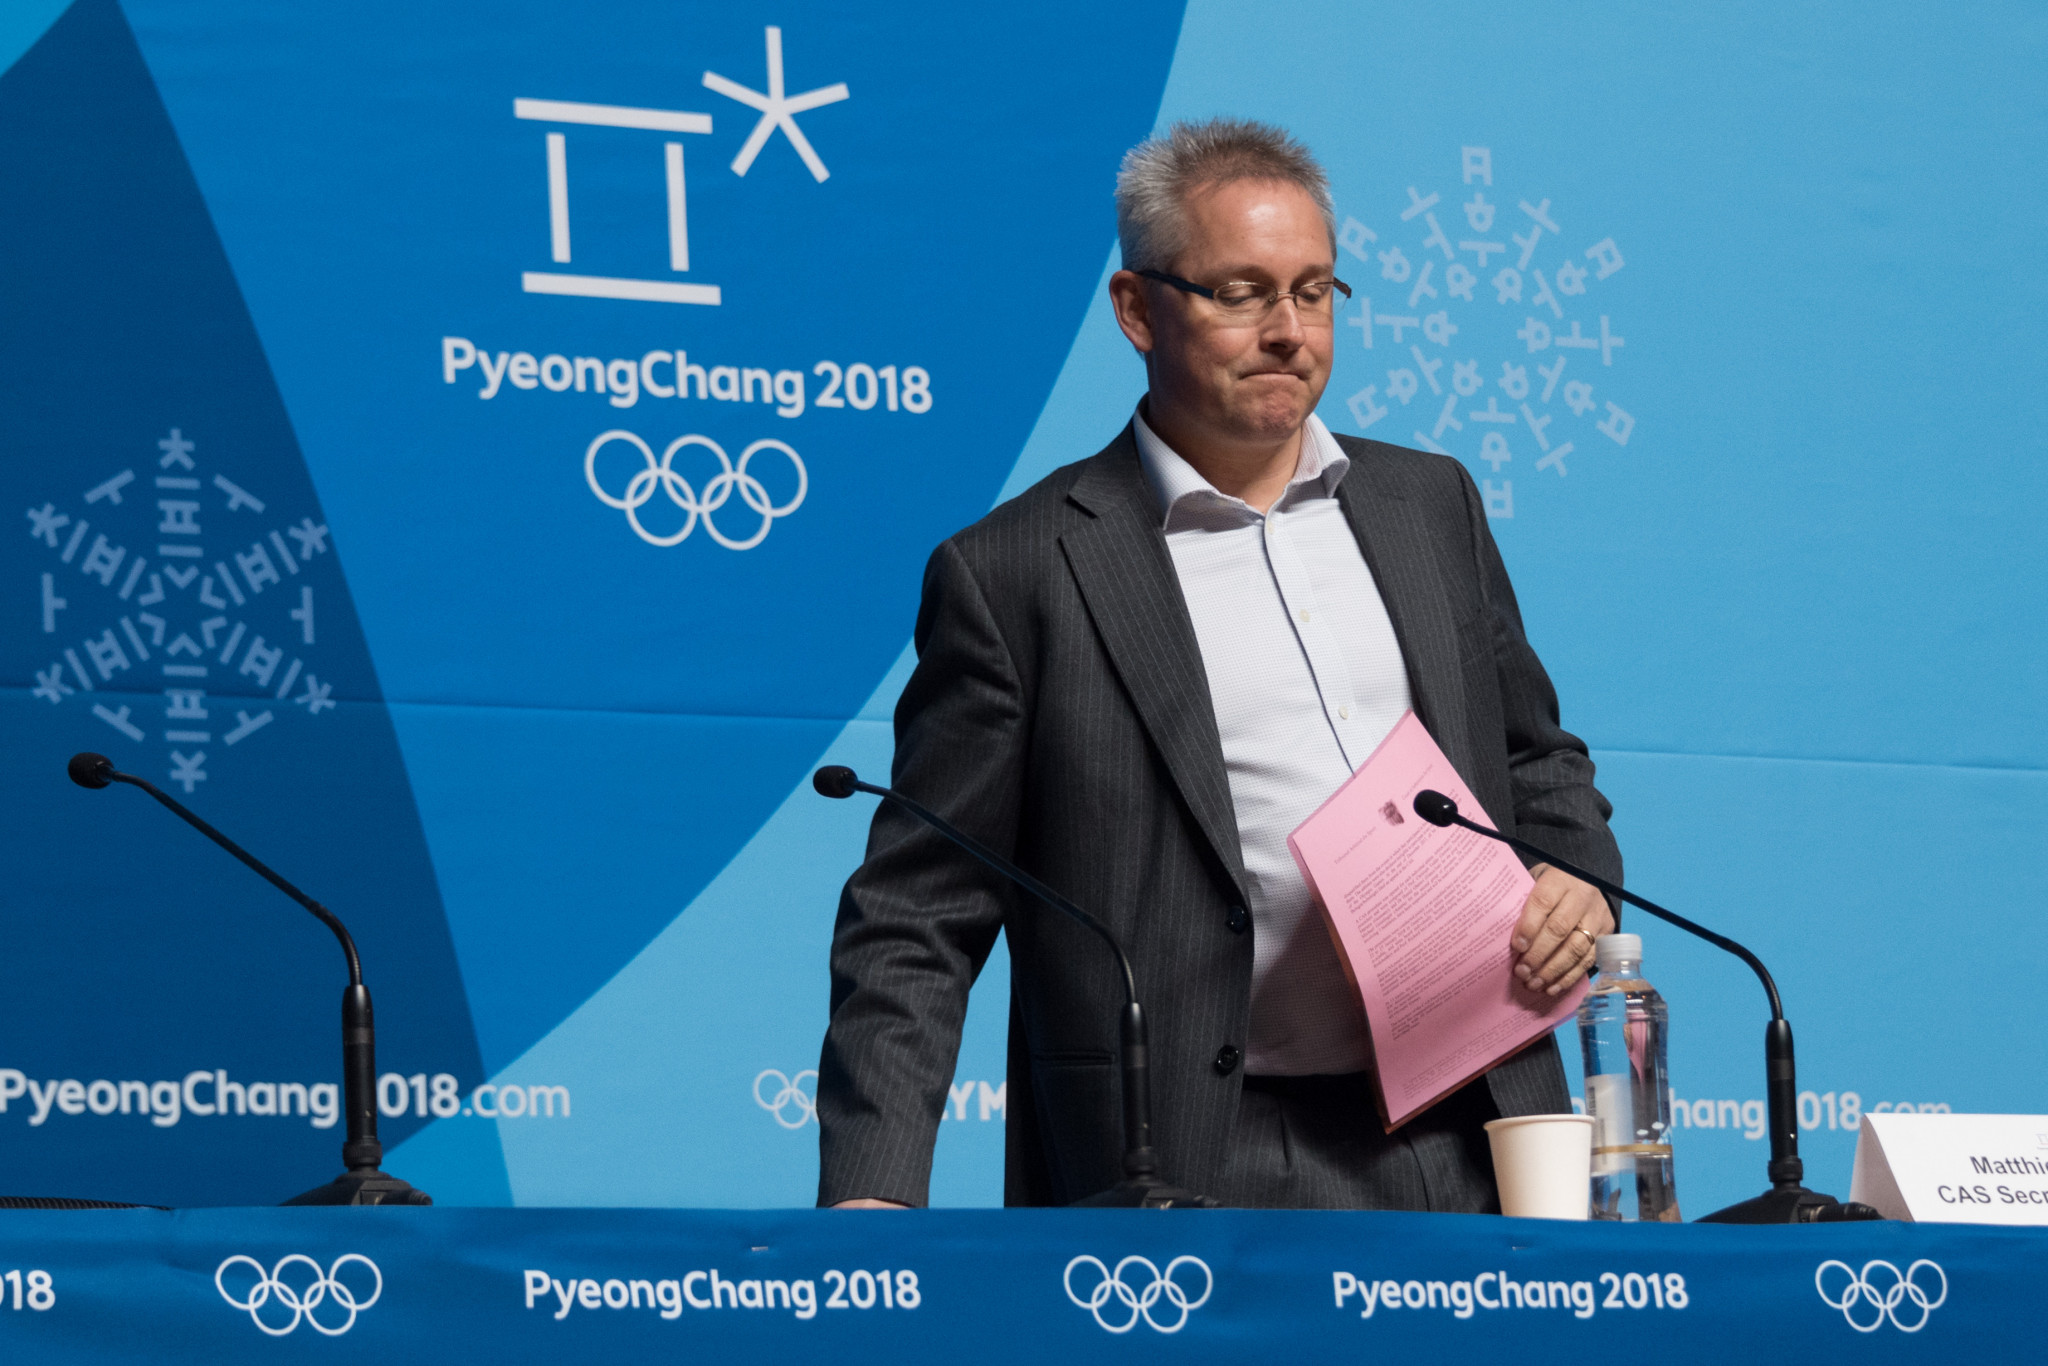 CAS verdict announced and North Korea arrive as preparations continue for Pyeongchang 2018